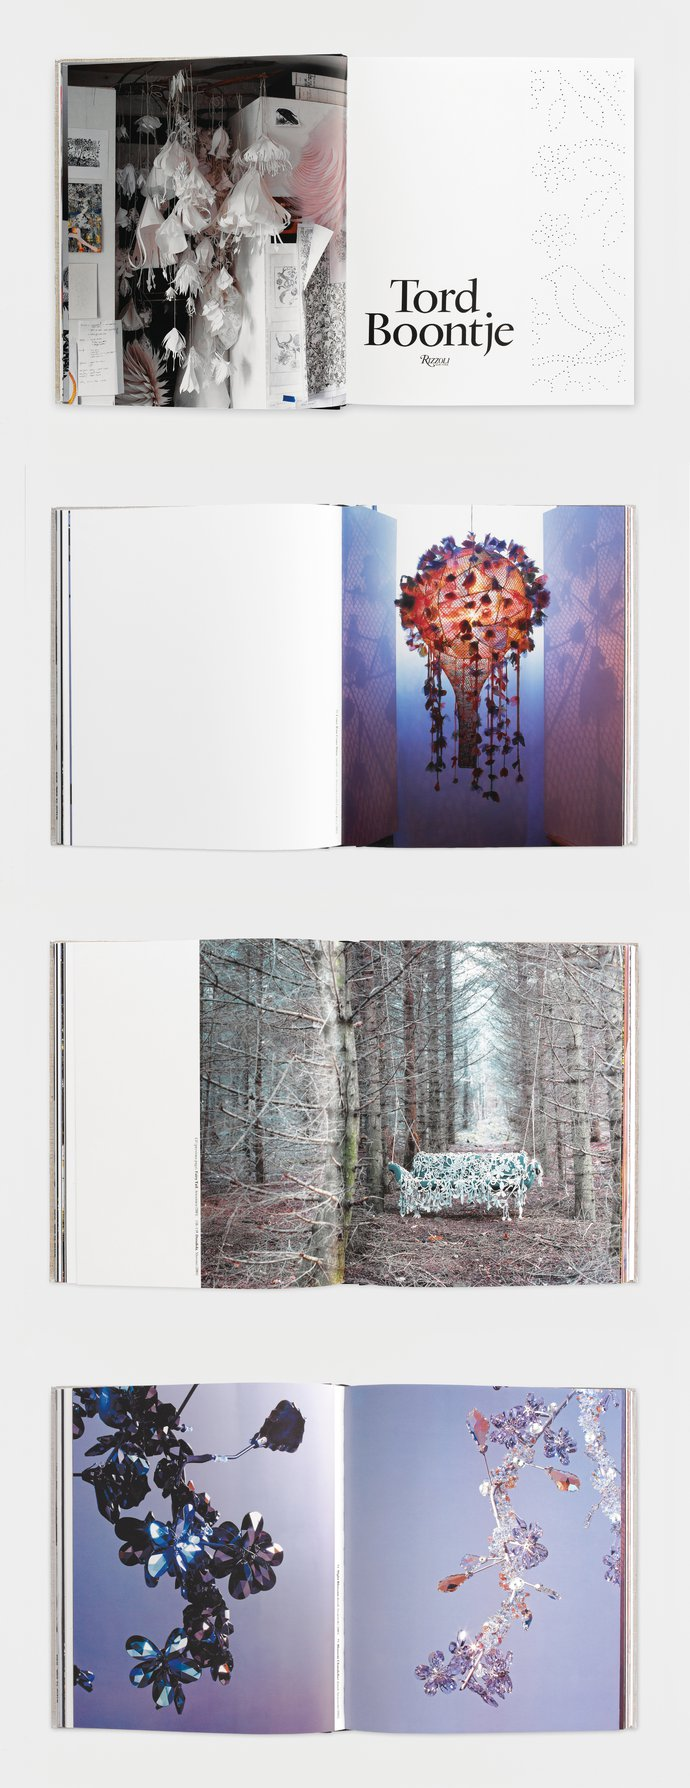 Rizzoli New York – Tord Boontje, 2007 (Publication), image 3